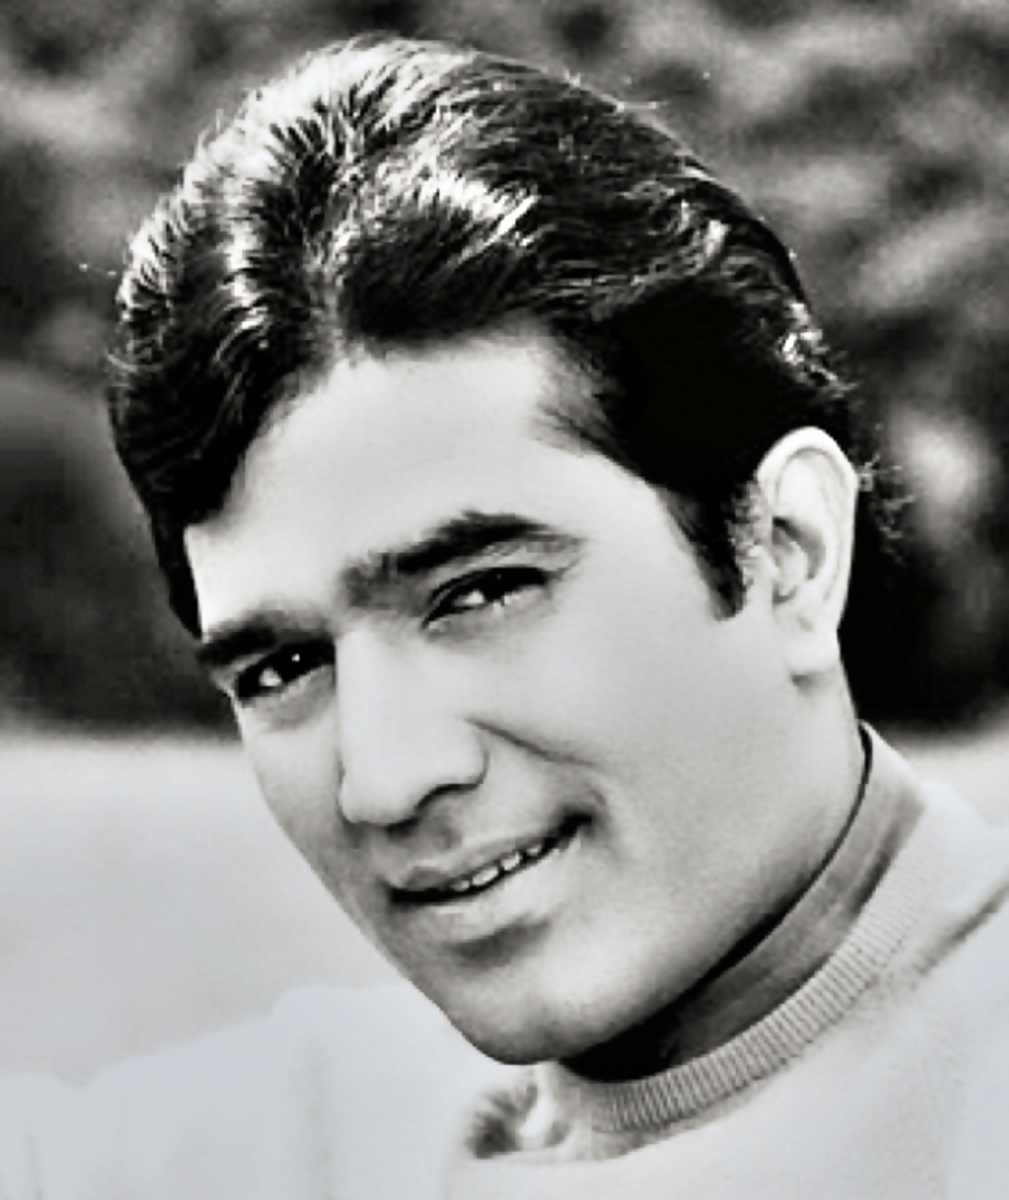 The first superstar of Bollywood, whose acting skills were often underrated